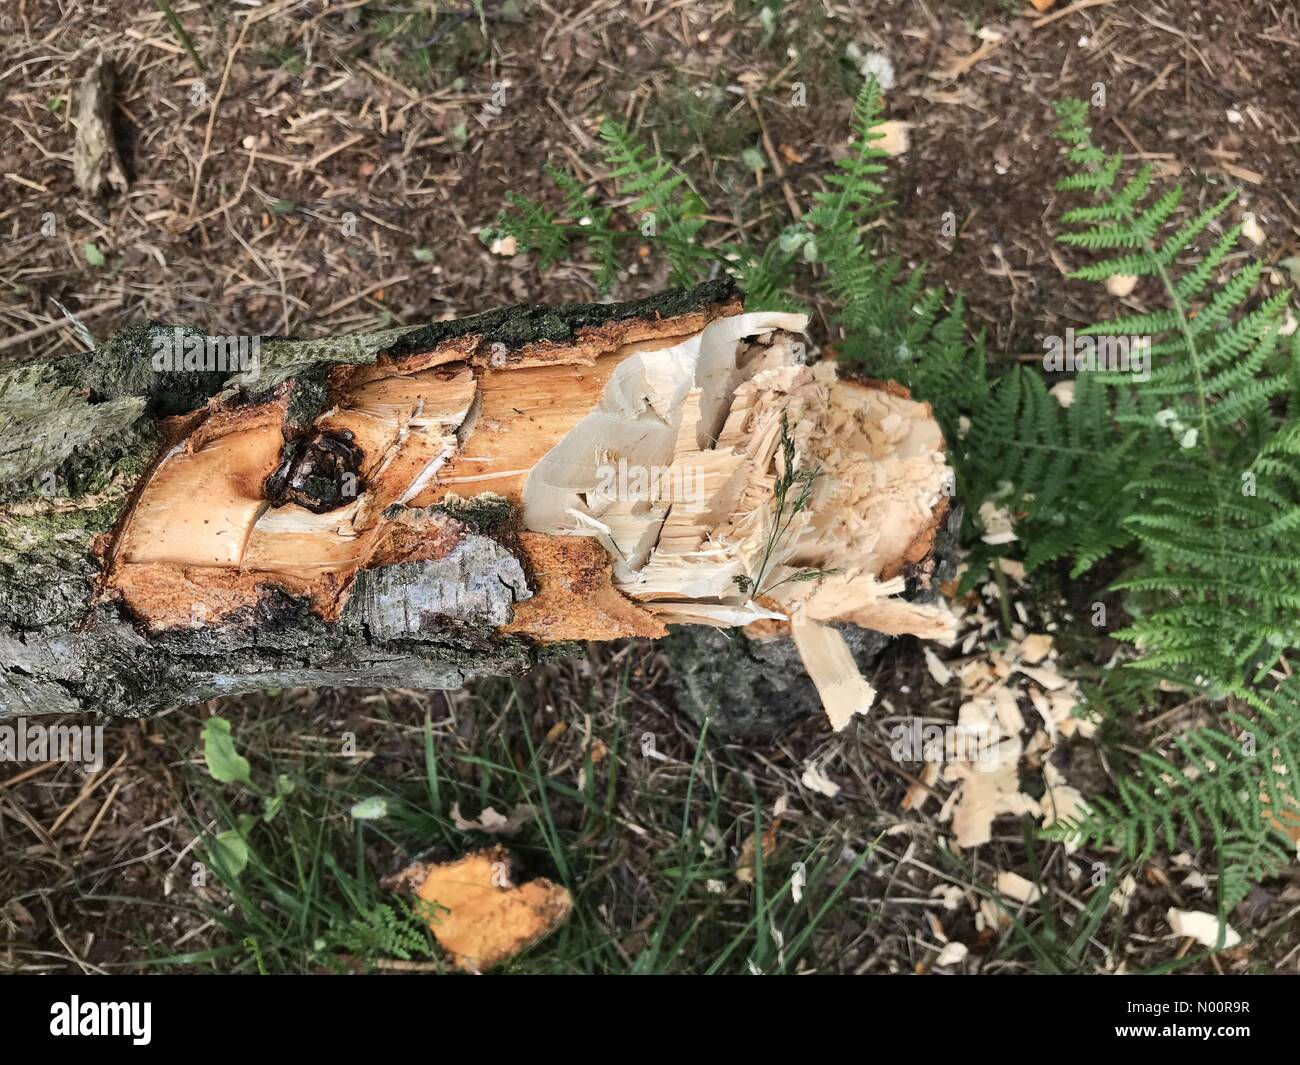 A recent spate of tree vandalism on Cannock Chase, Staffordshire. Tree has been cut with an axe. Damage occurred Friday 15th June - Stock Image